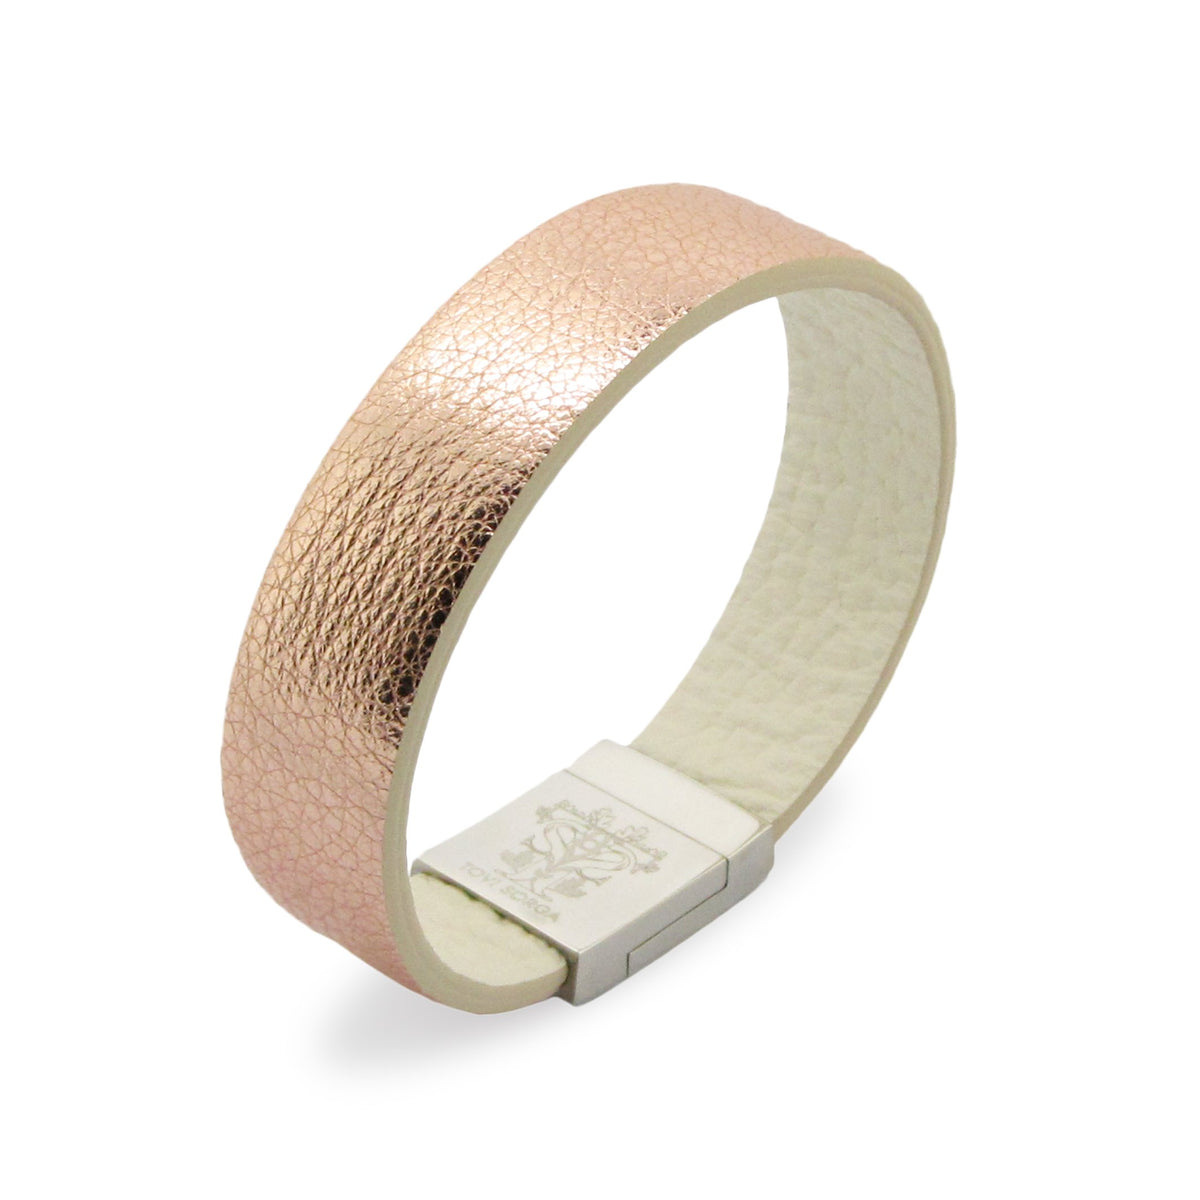 Leather Contactless Payment Bracelet: Plain Metallic Gold / Rose Gold Contactless Payment Bracelet Tovi Sorga Extra-Small Rose Gold